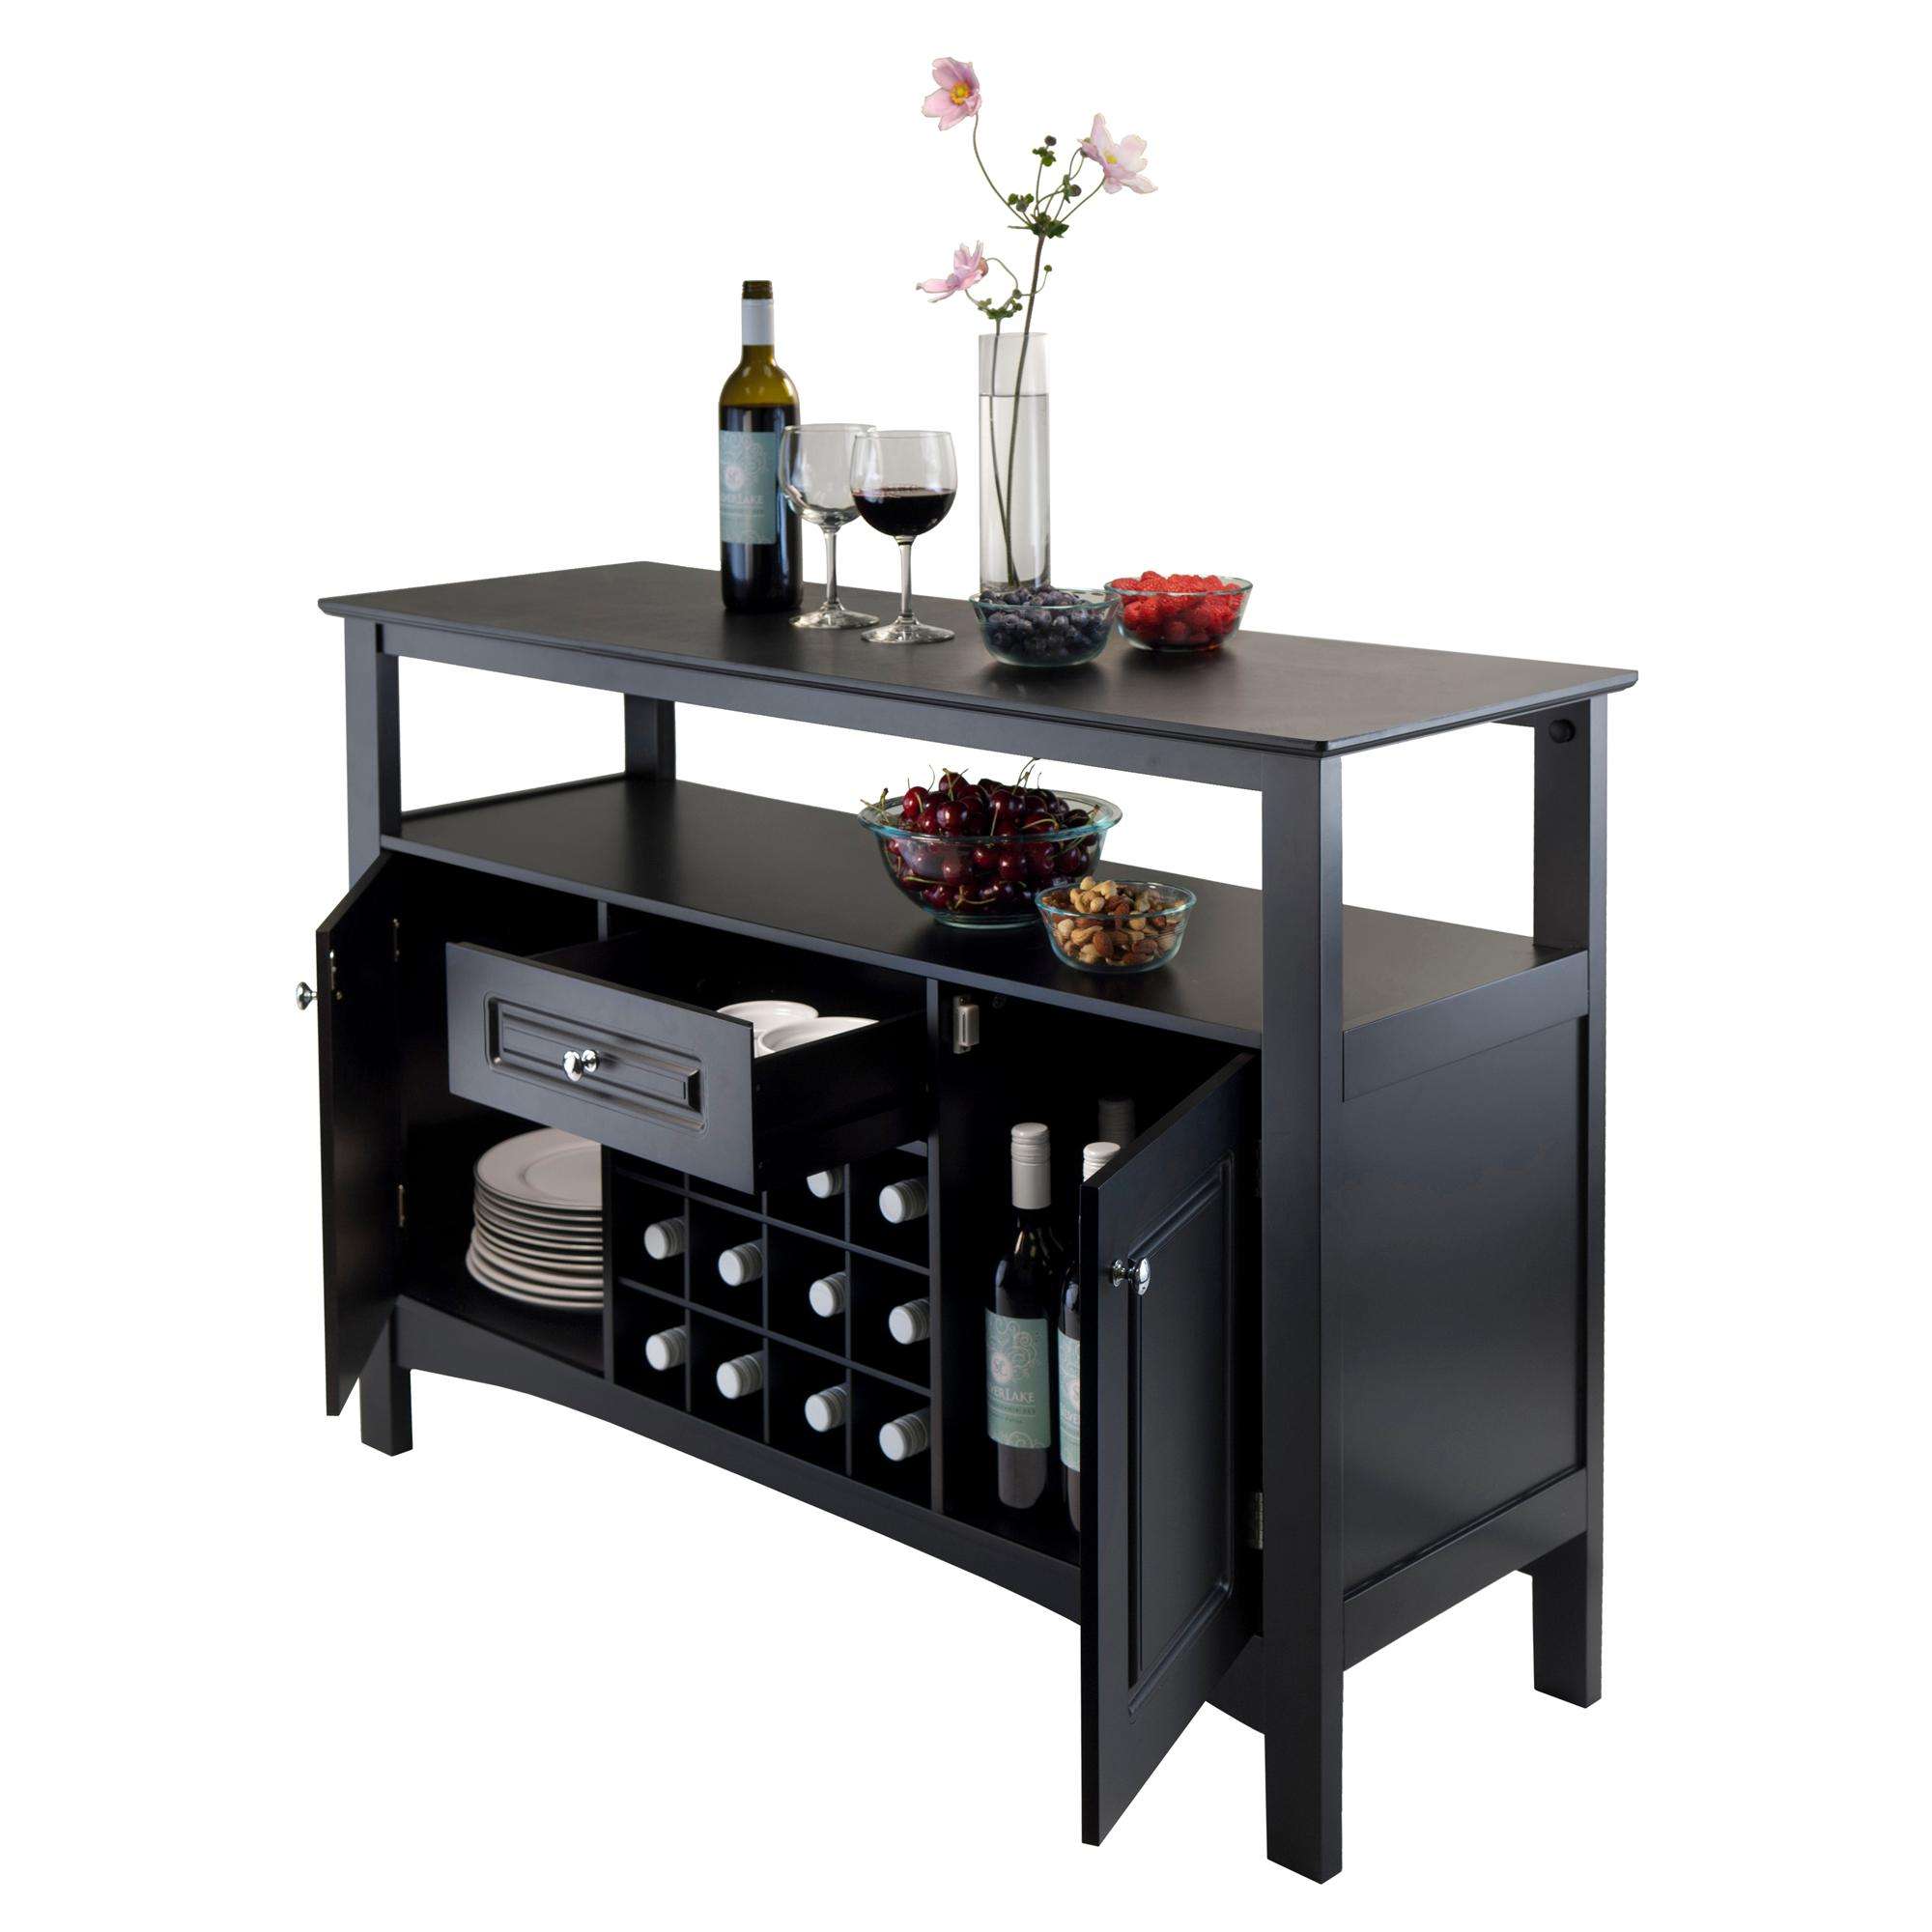 Winsome wood jasper storage buffet home kitchen Home bar furniture amazon